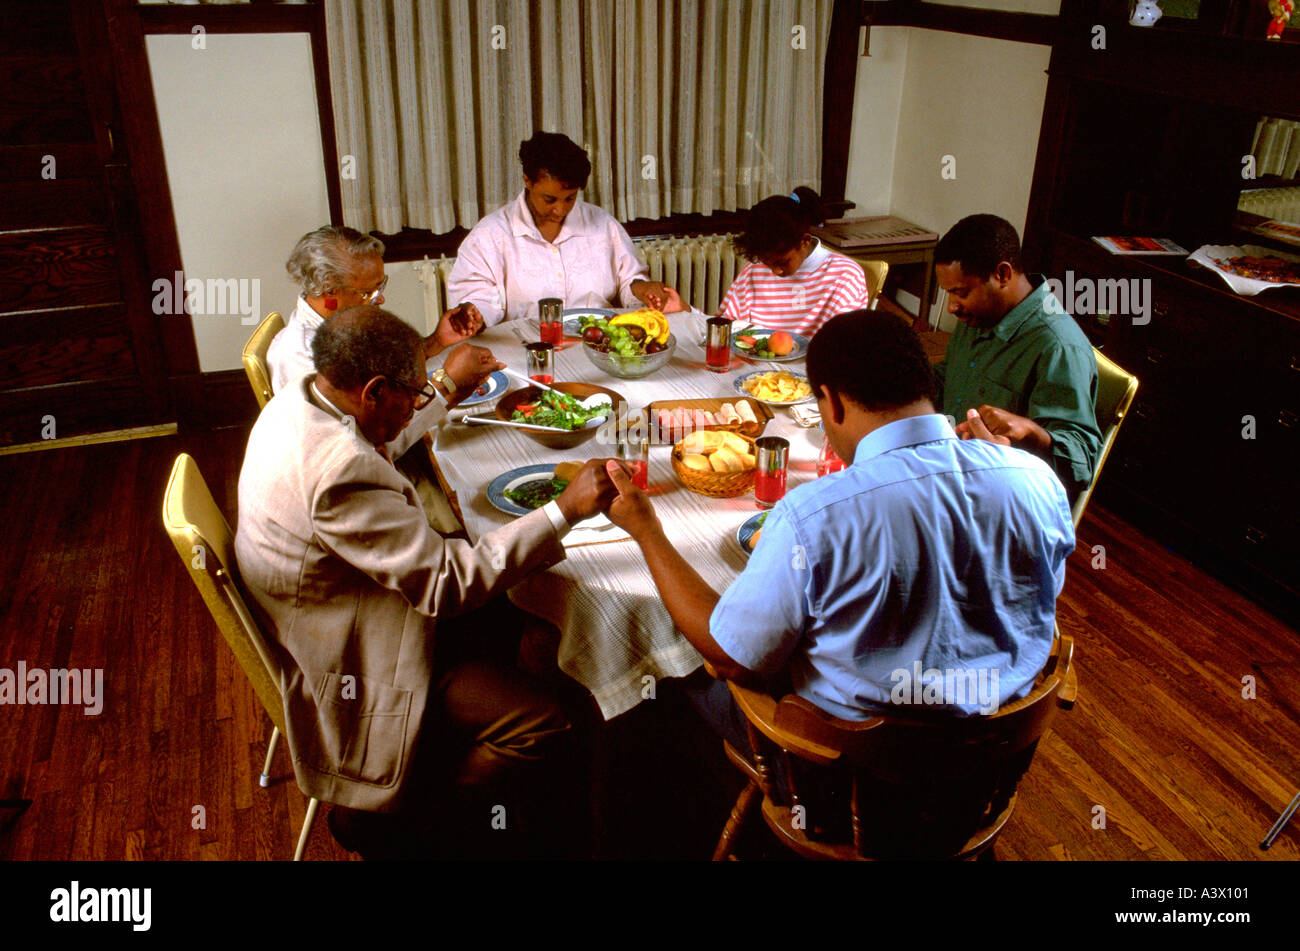 Black Family Of Three Generations Saying Grace At Dinner Table St Paul Minnesota USA